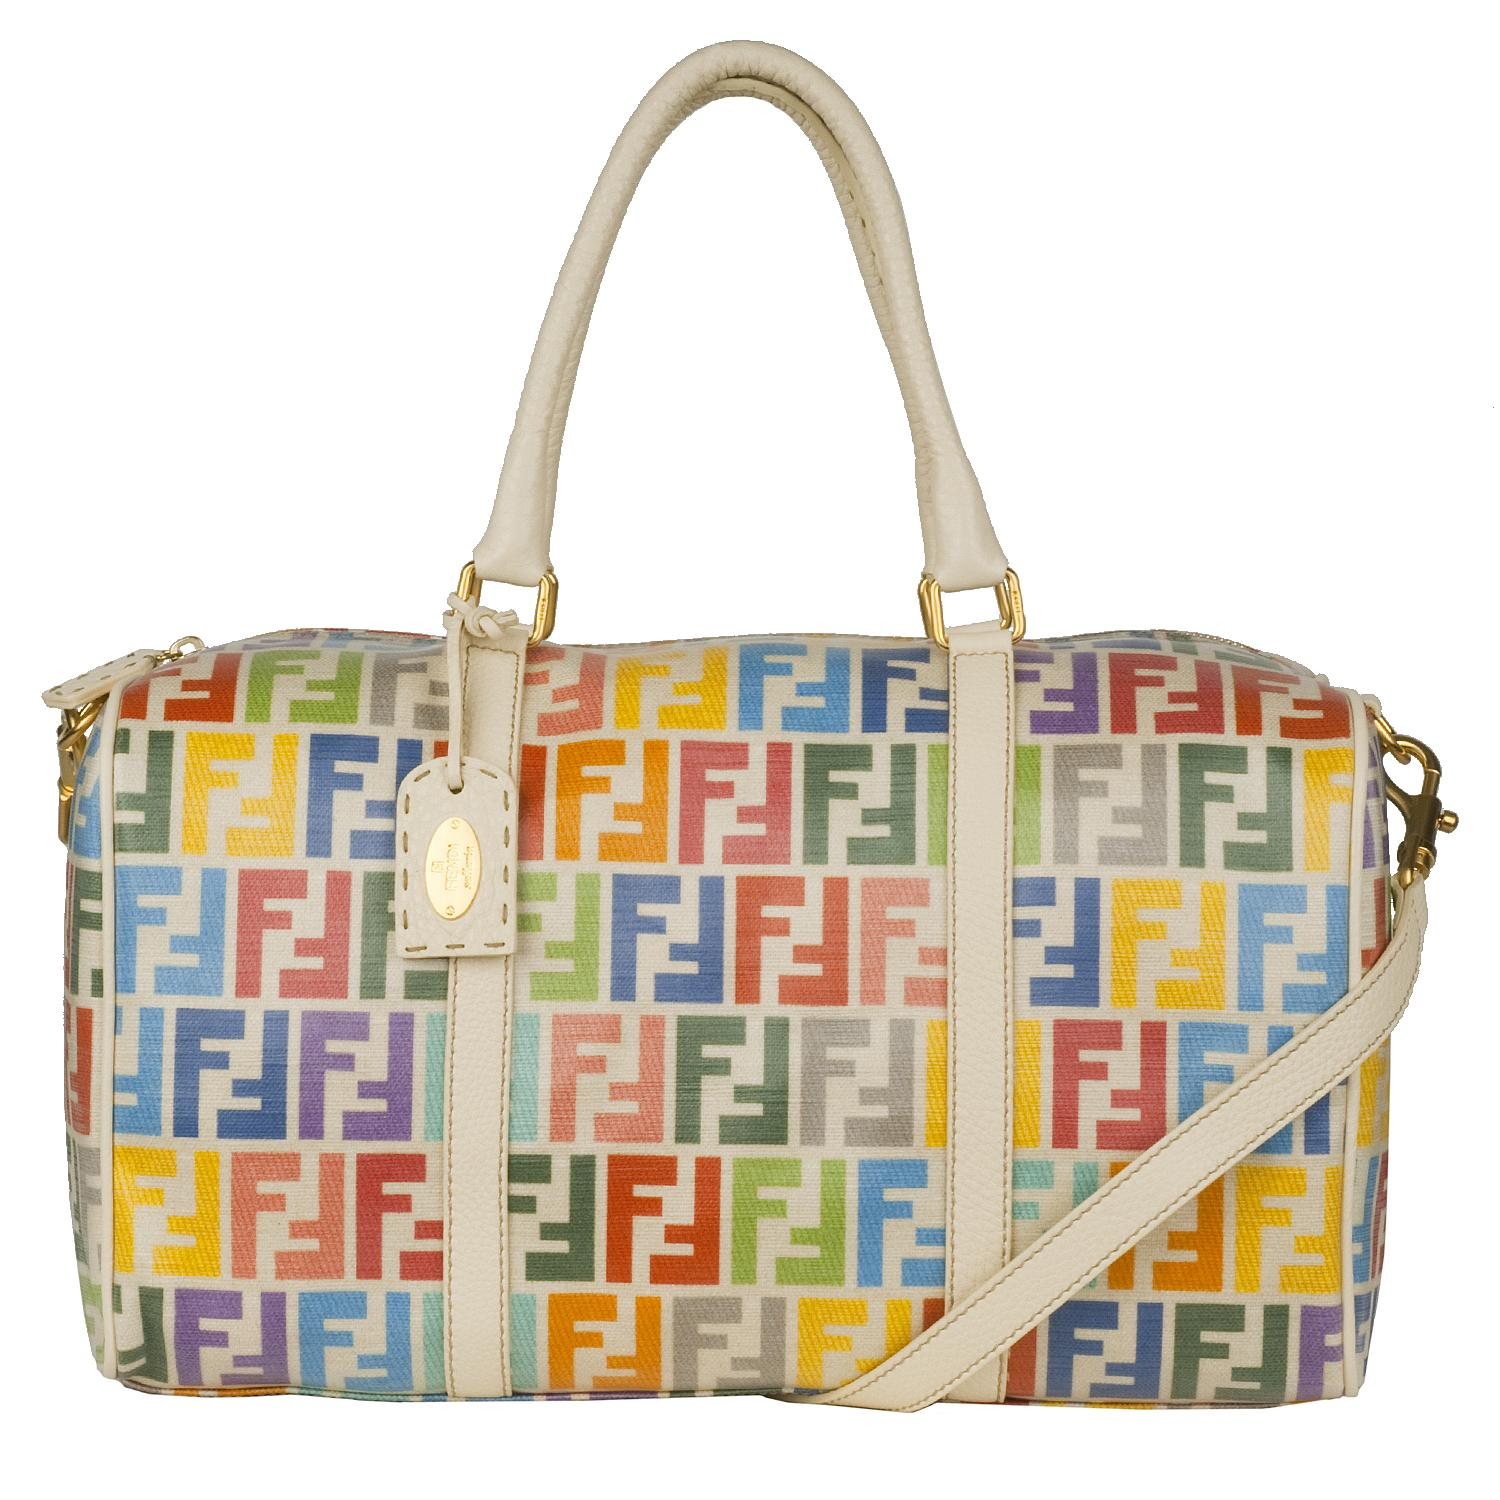 Fendi Handbags Overstock